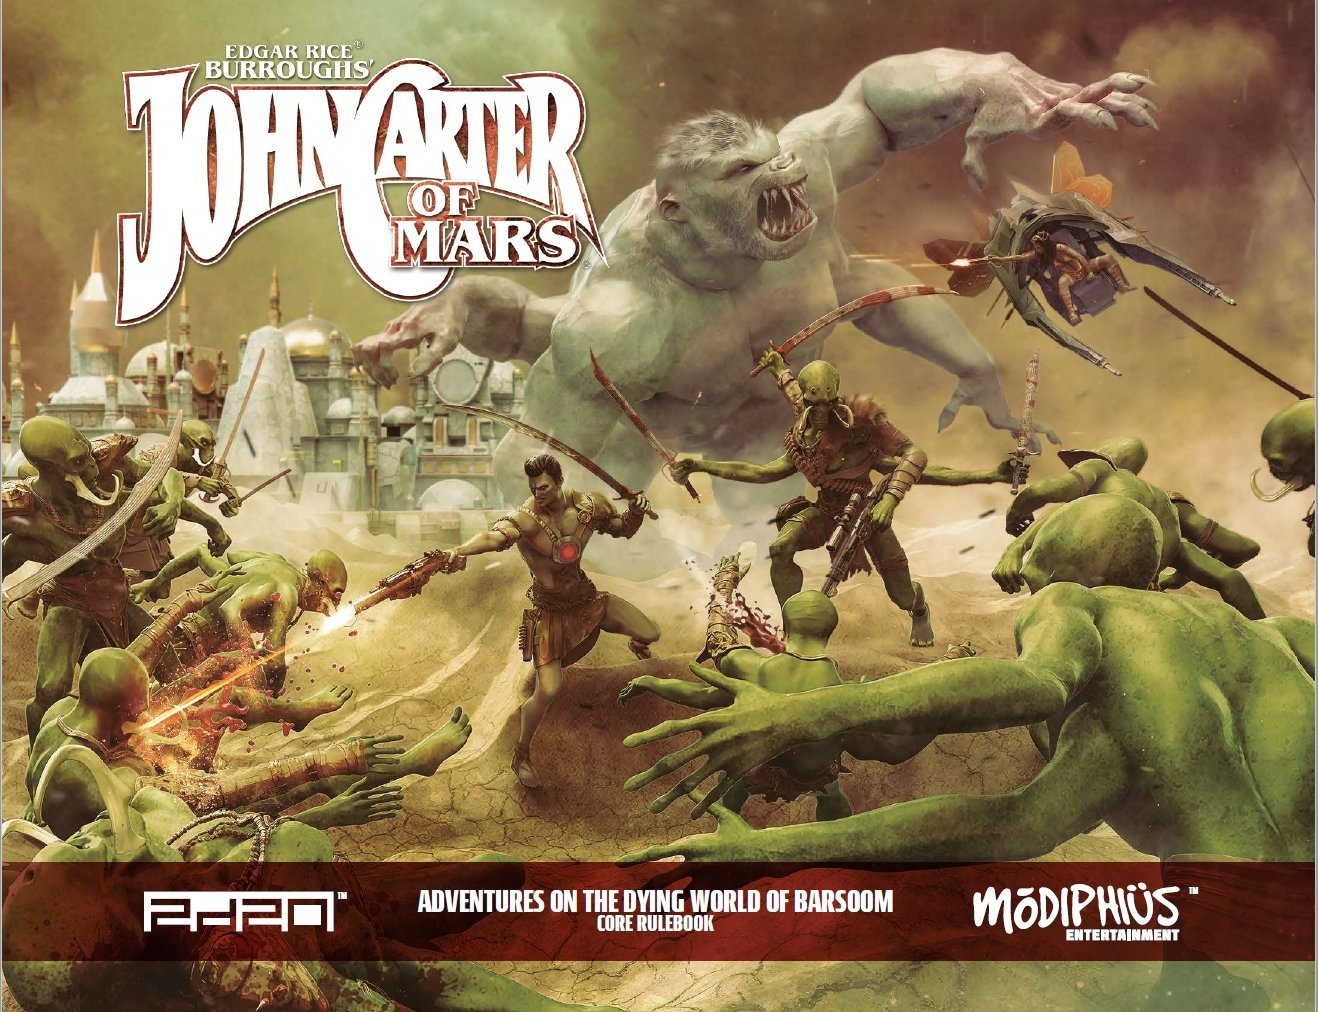 John Carter of Mars RPG: Adventures on the Dying World of Barsoom (T.O.S.) -  Modiphius Entertainment